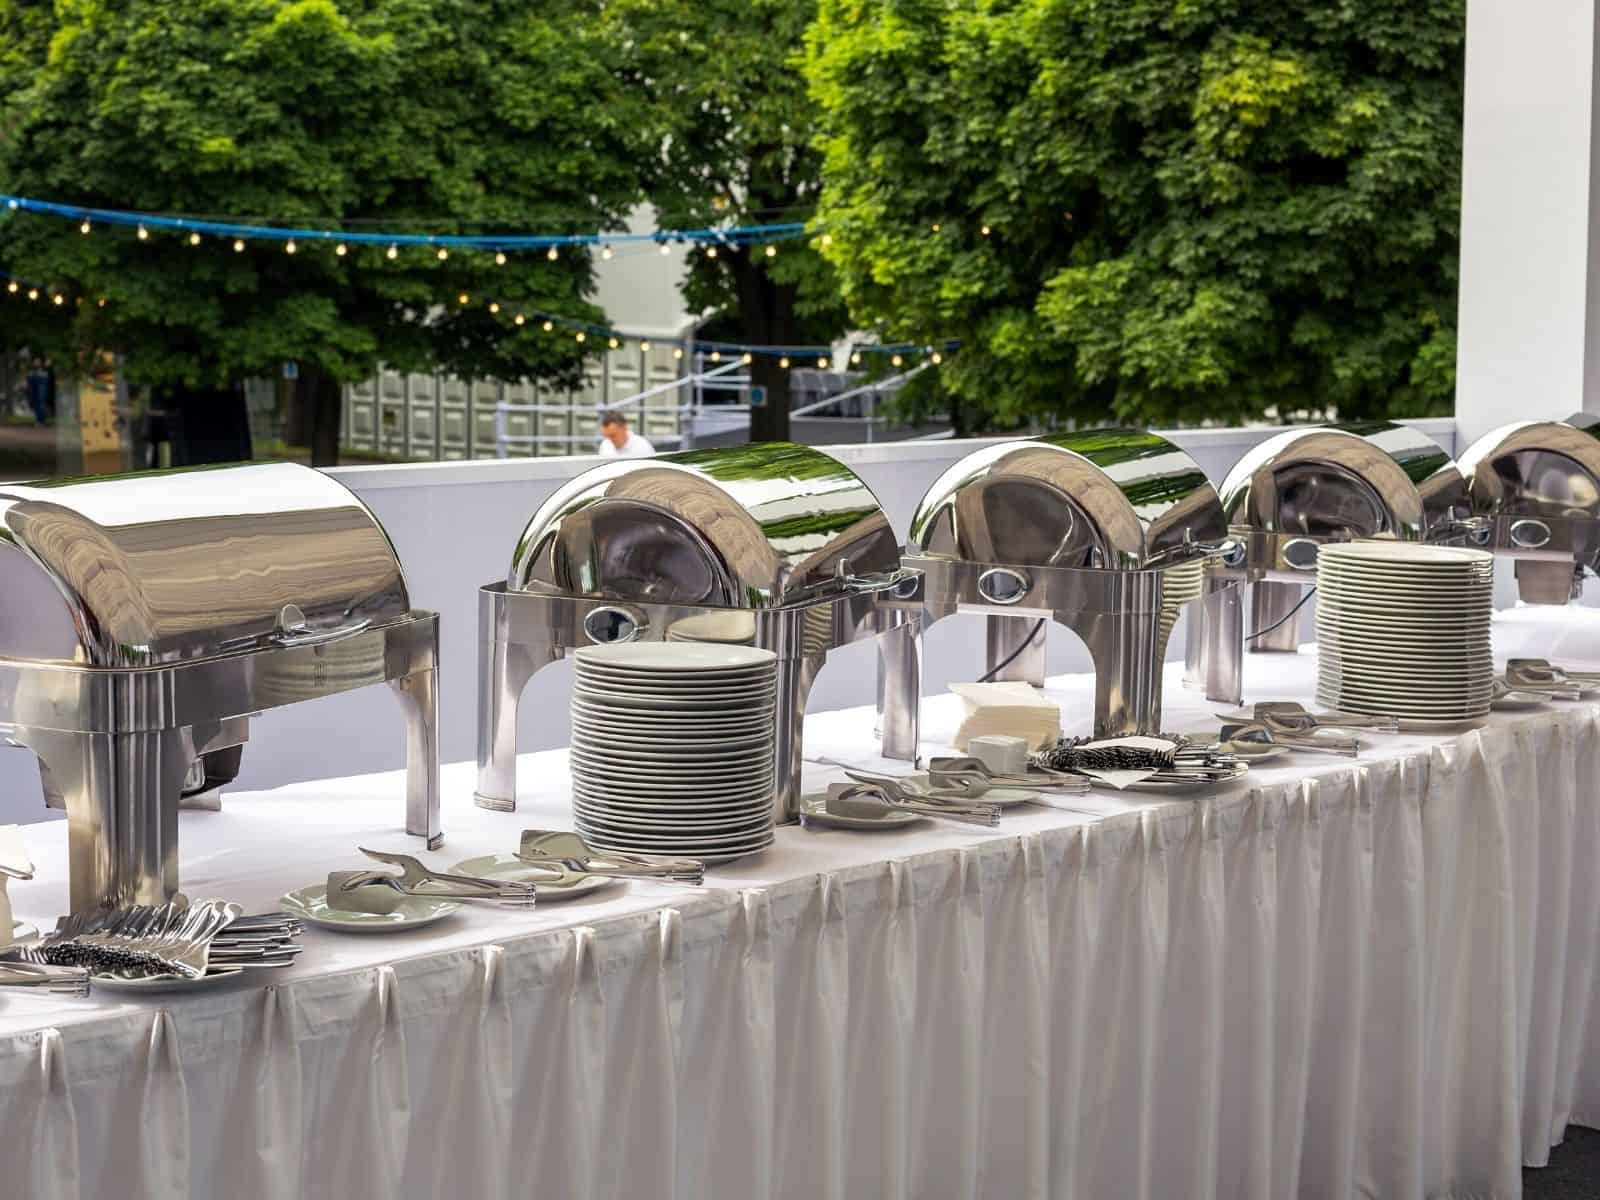 chafing dishes on a long buffet table with plates.